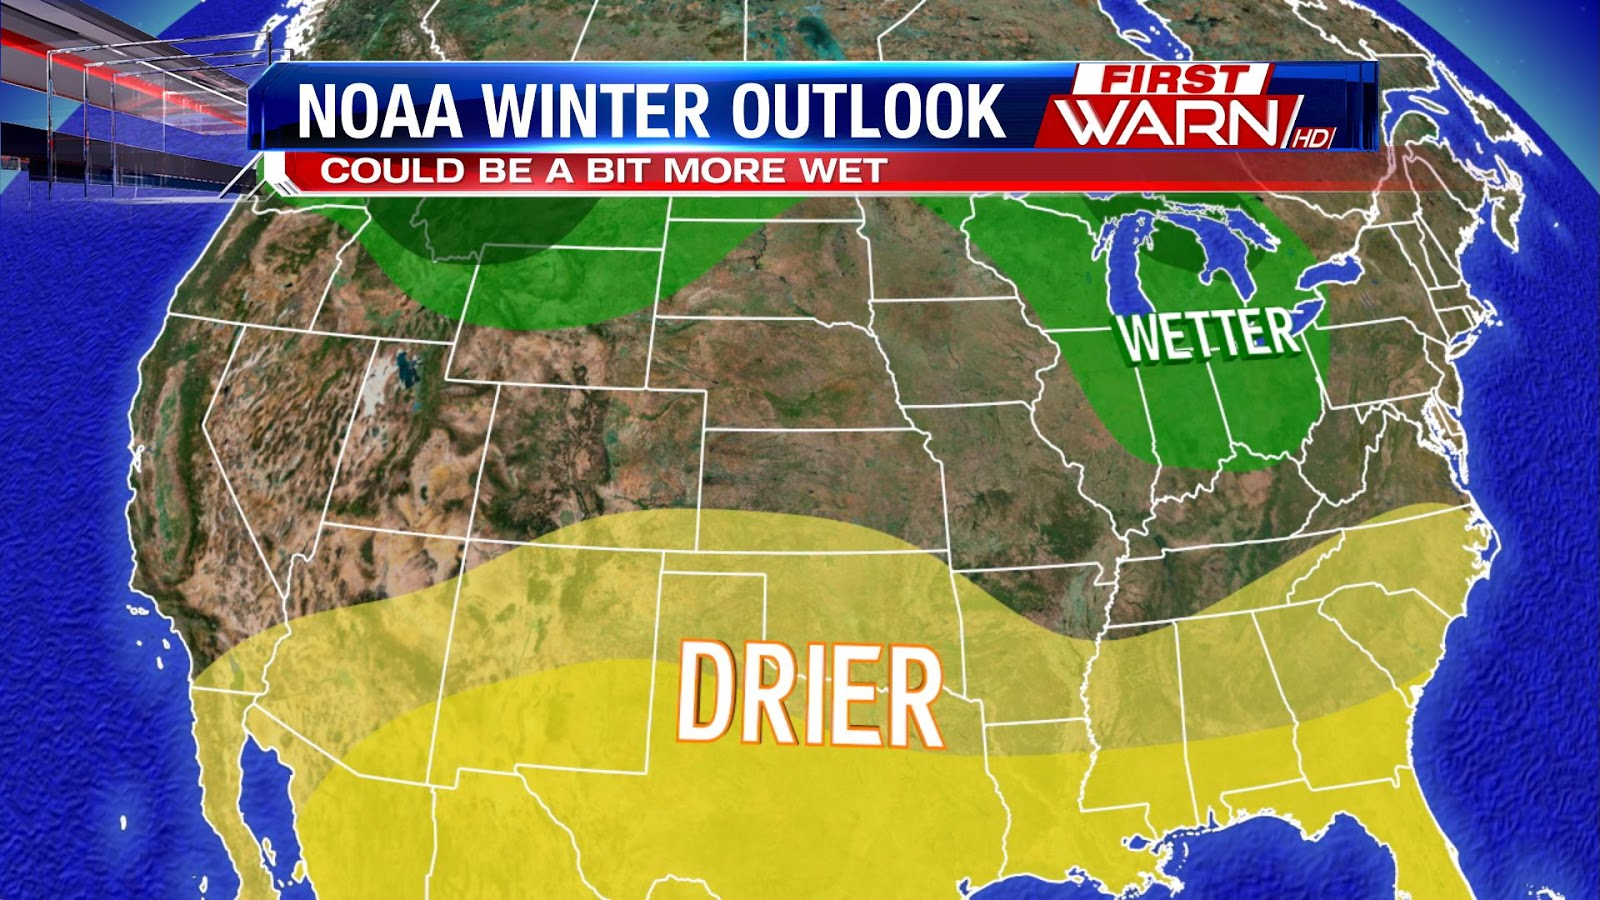 on the snowy precipitation side of things again areas in the west and south have a 30 50 probability of experiencing a drier winter